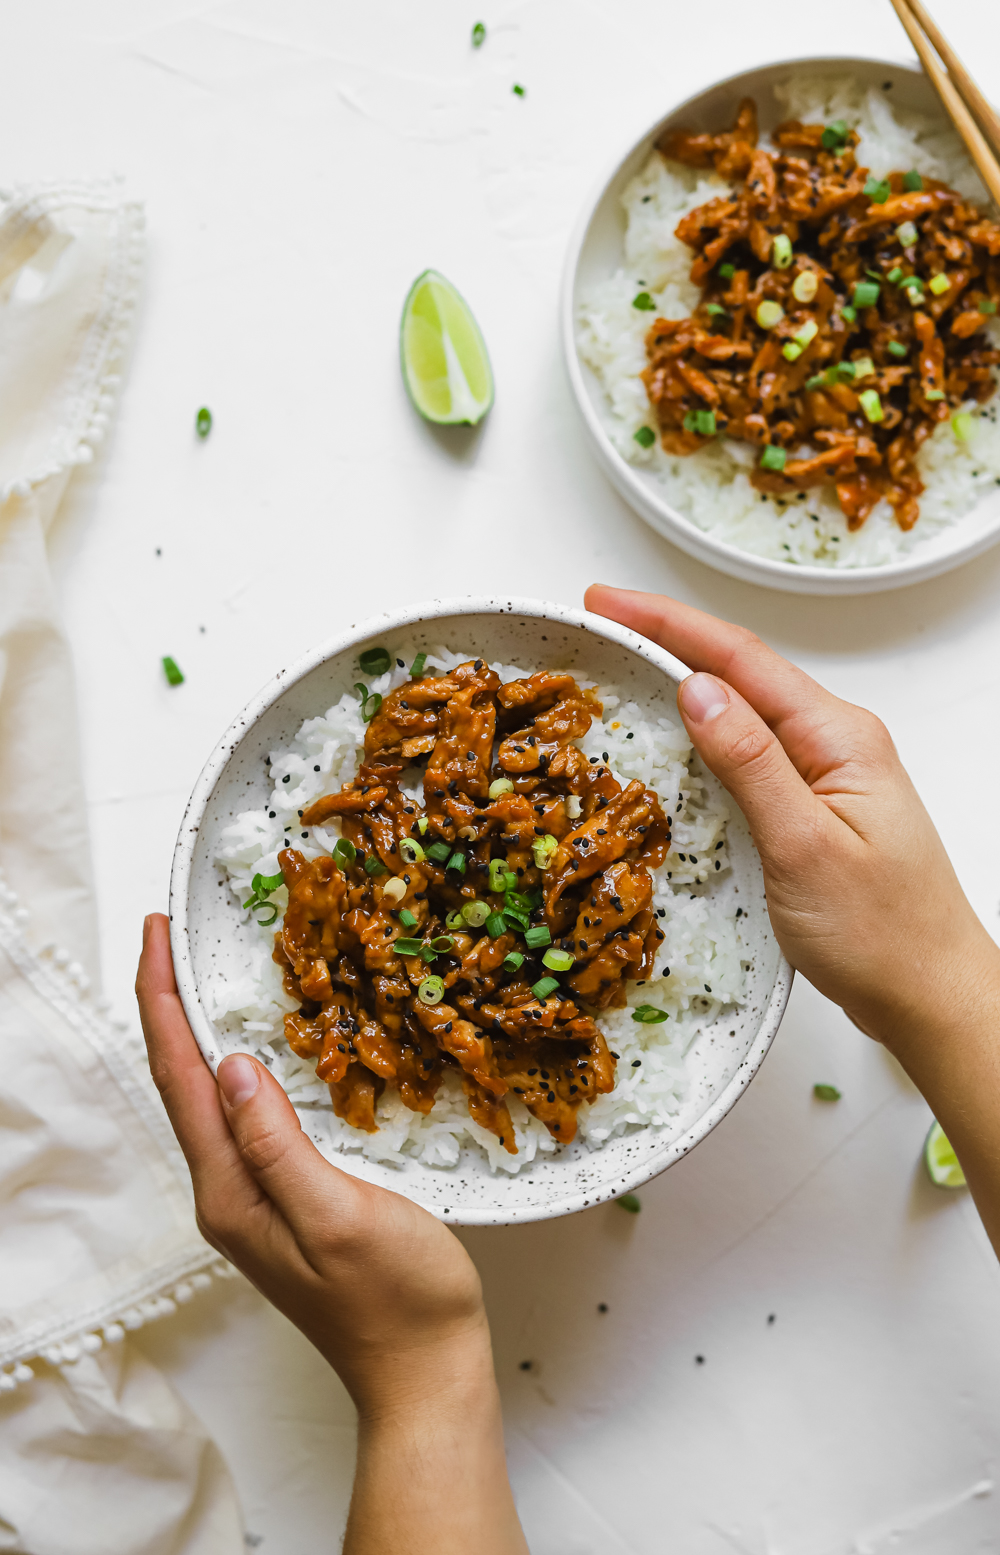 Hangs holding a bowl of vegan teriyaki soy curls on a bed of rice and topped with black sesame seeds and scallions.